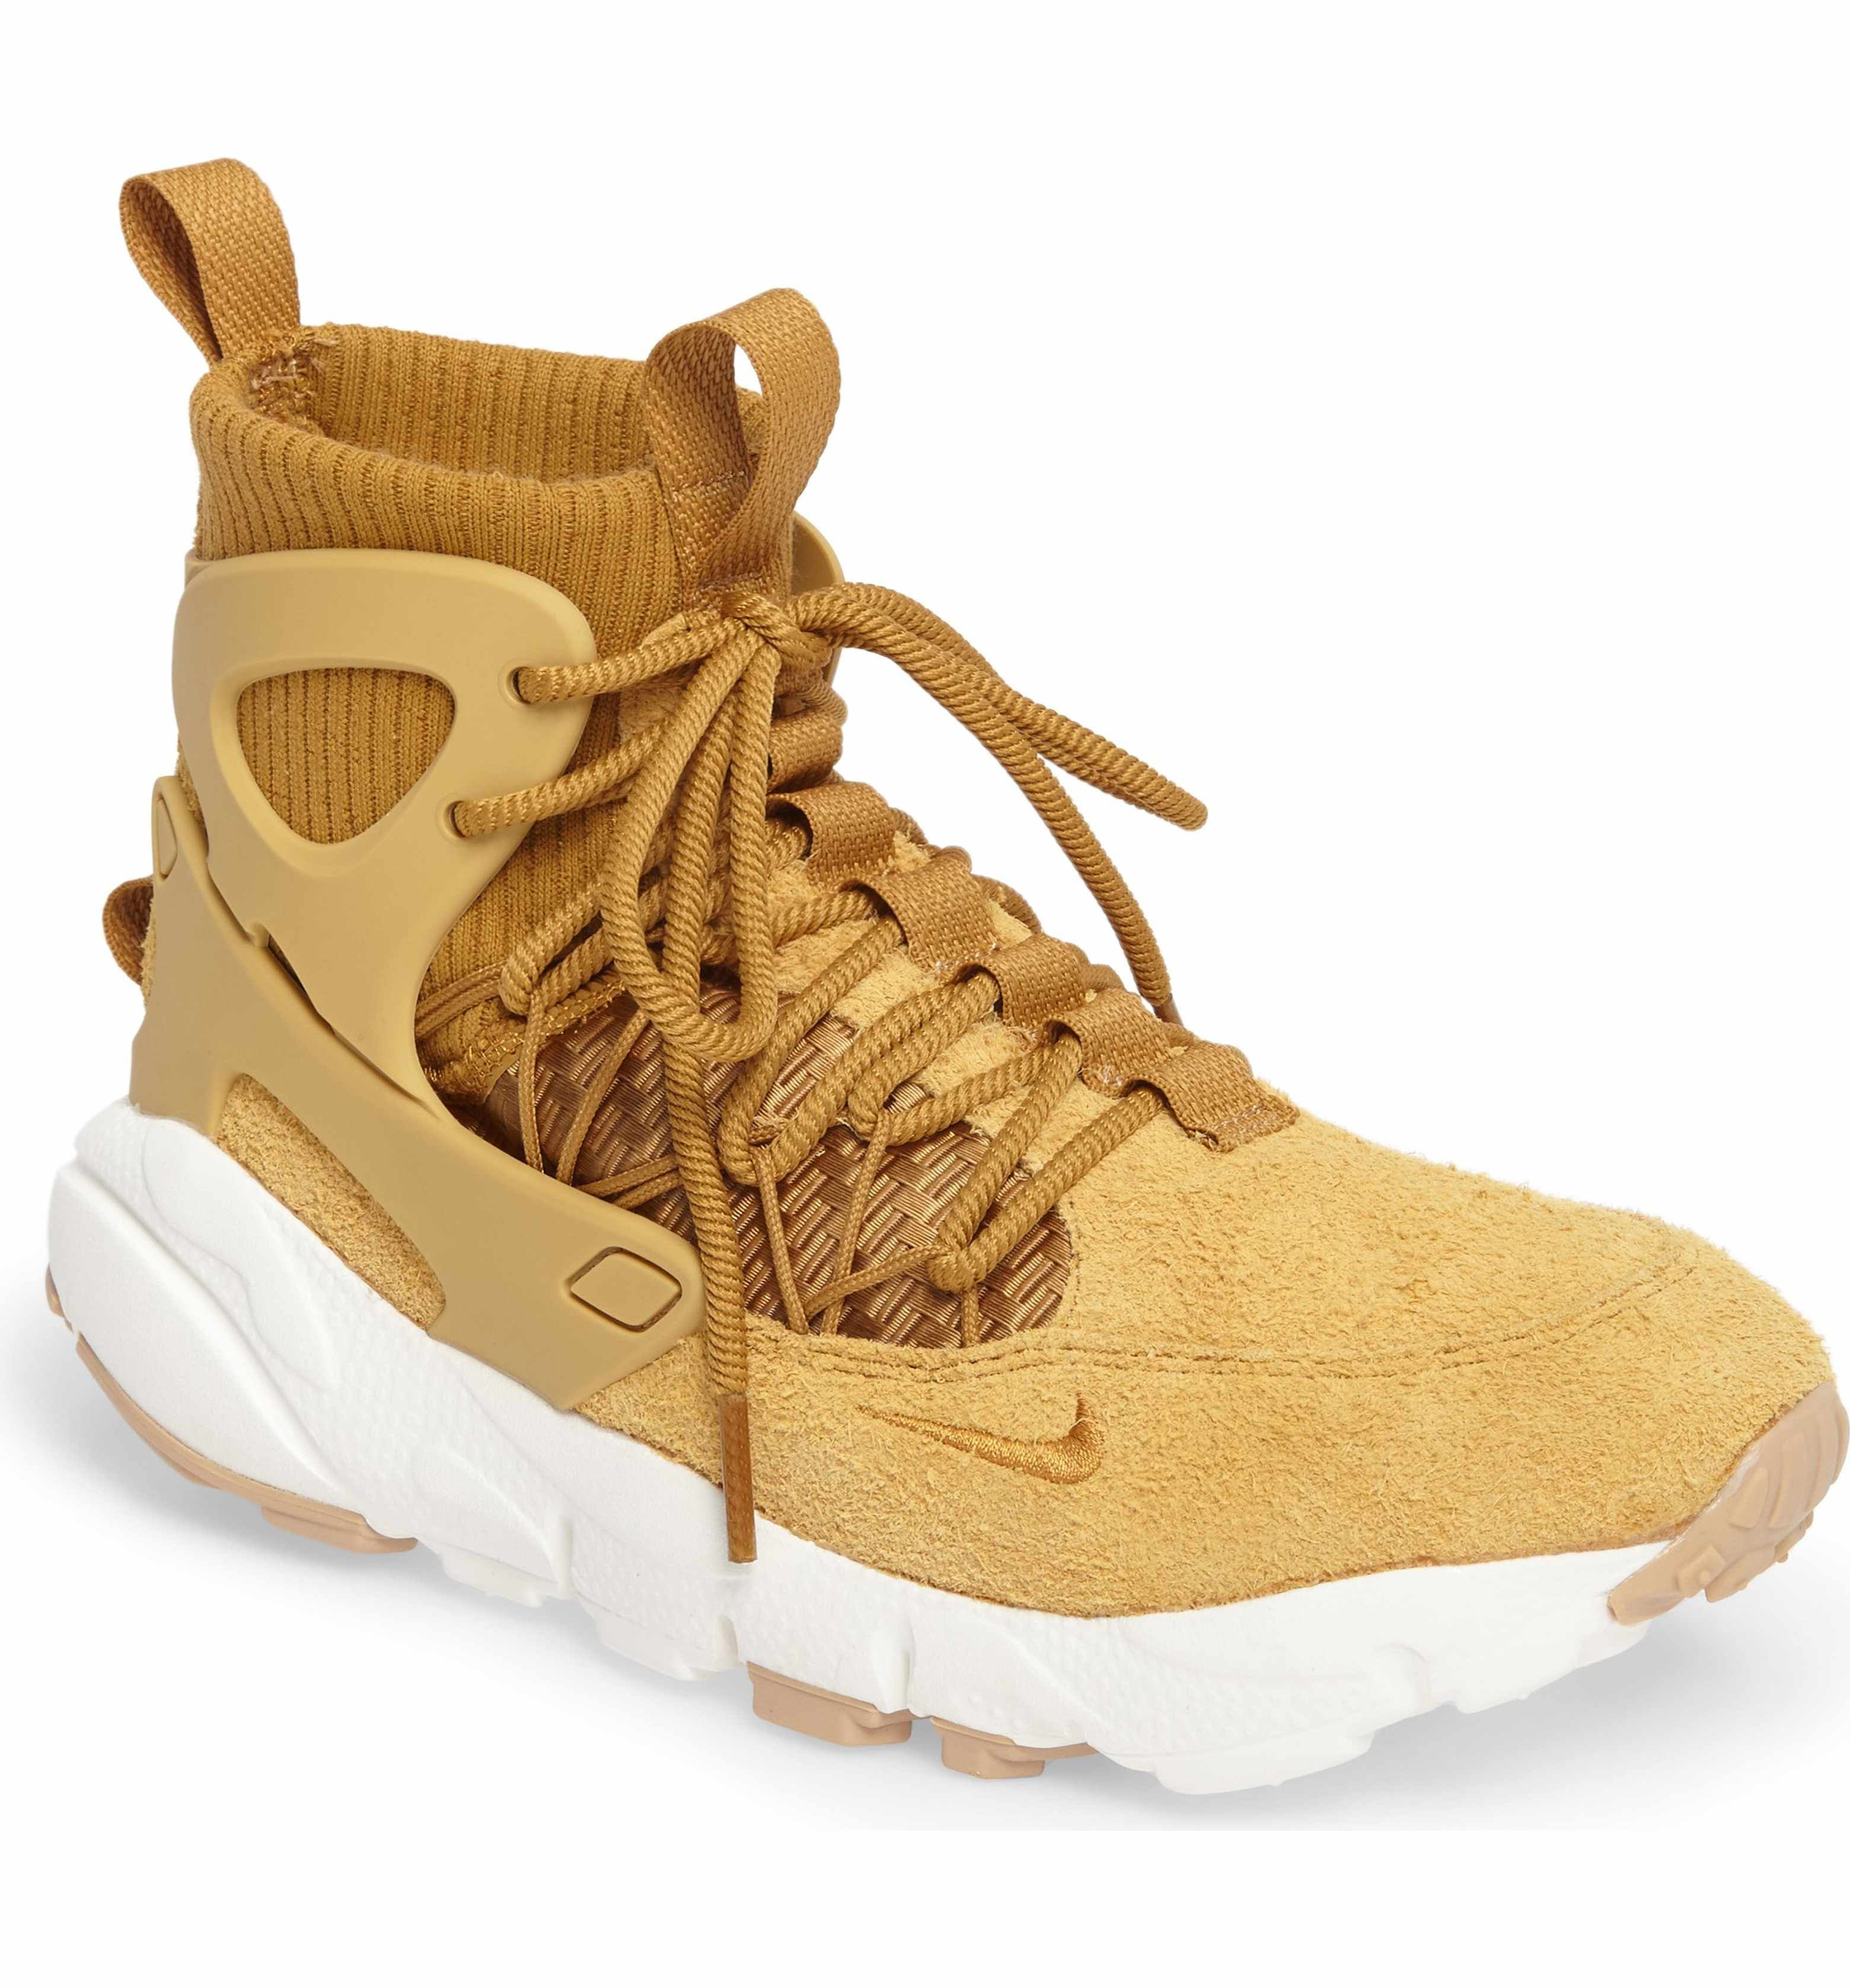 Nike air footscape mid sneaker boot women nordstrom